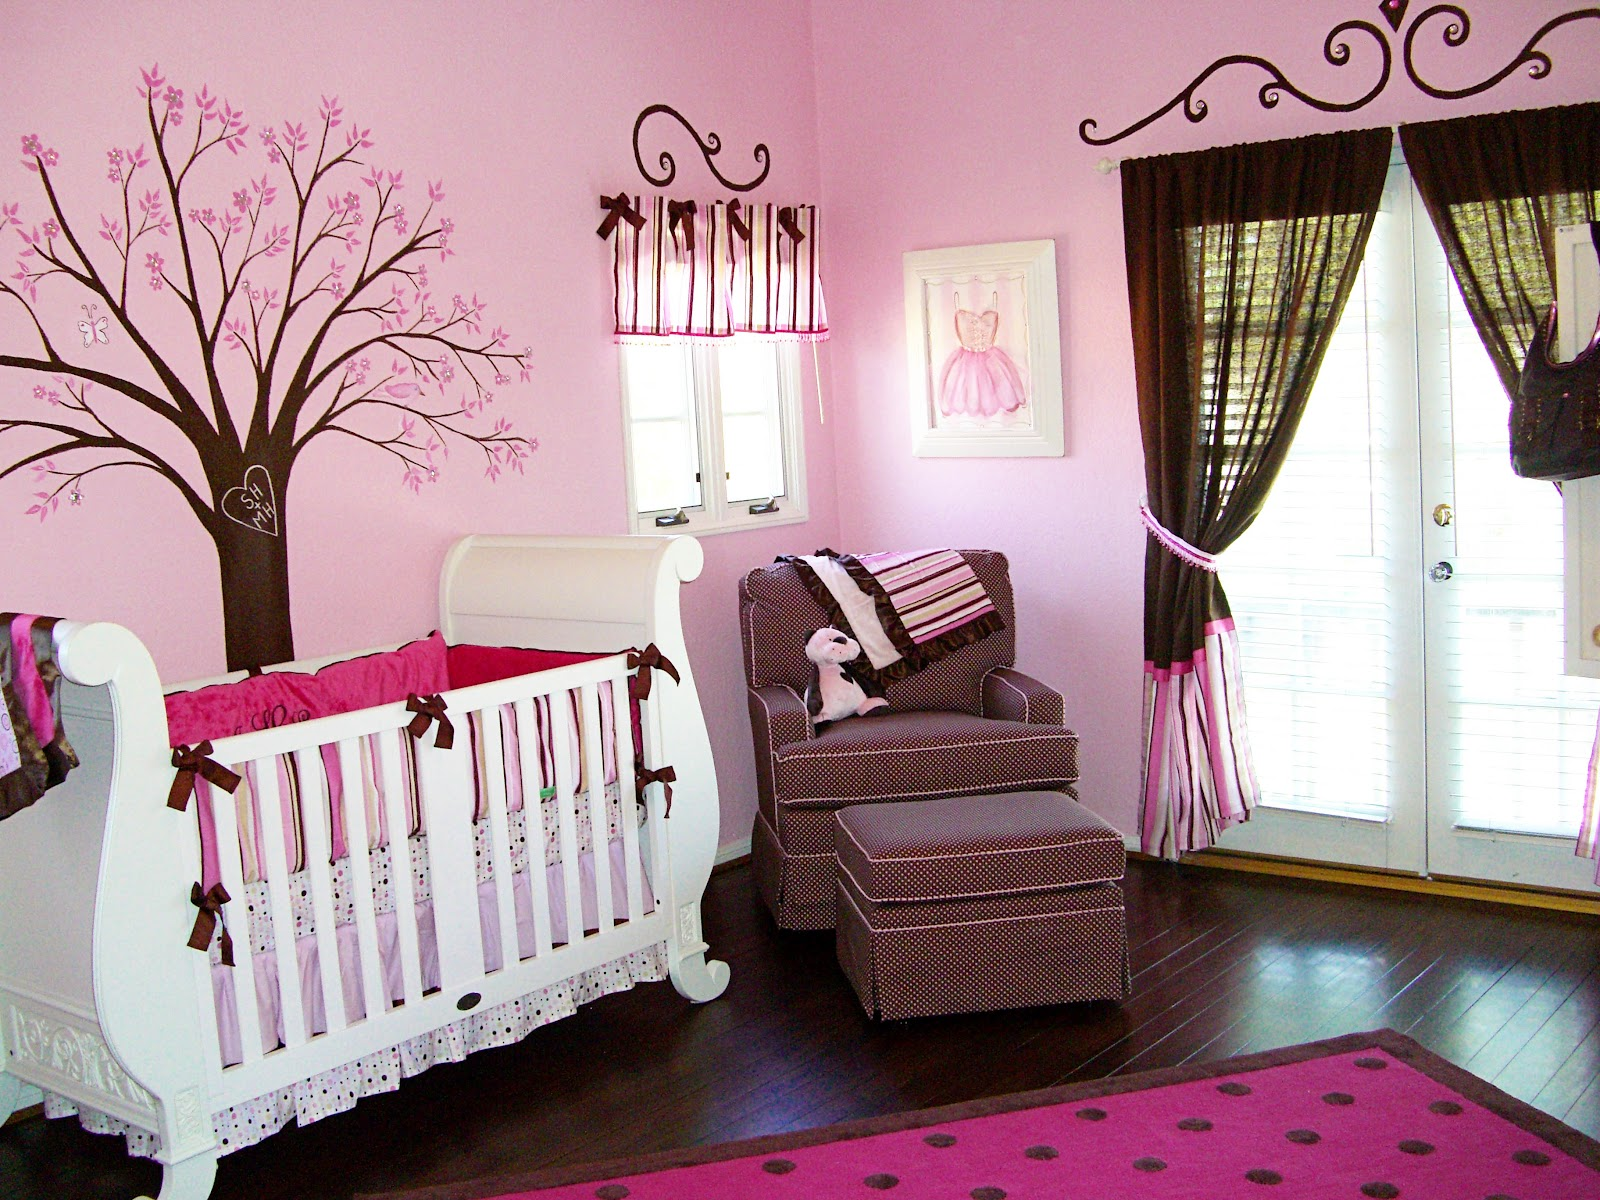 Full pink color girl baby room ideas decorate Baby girl decorating room